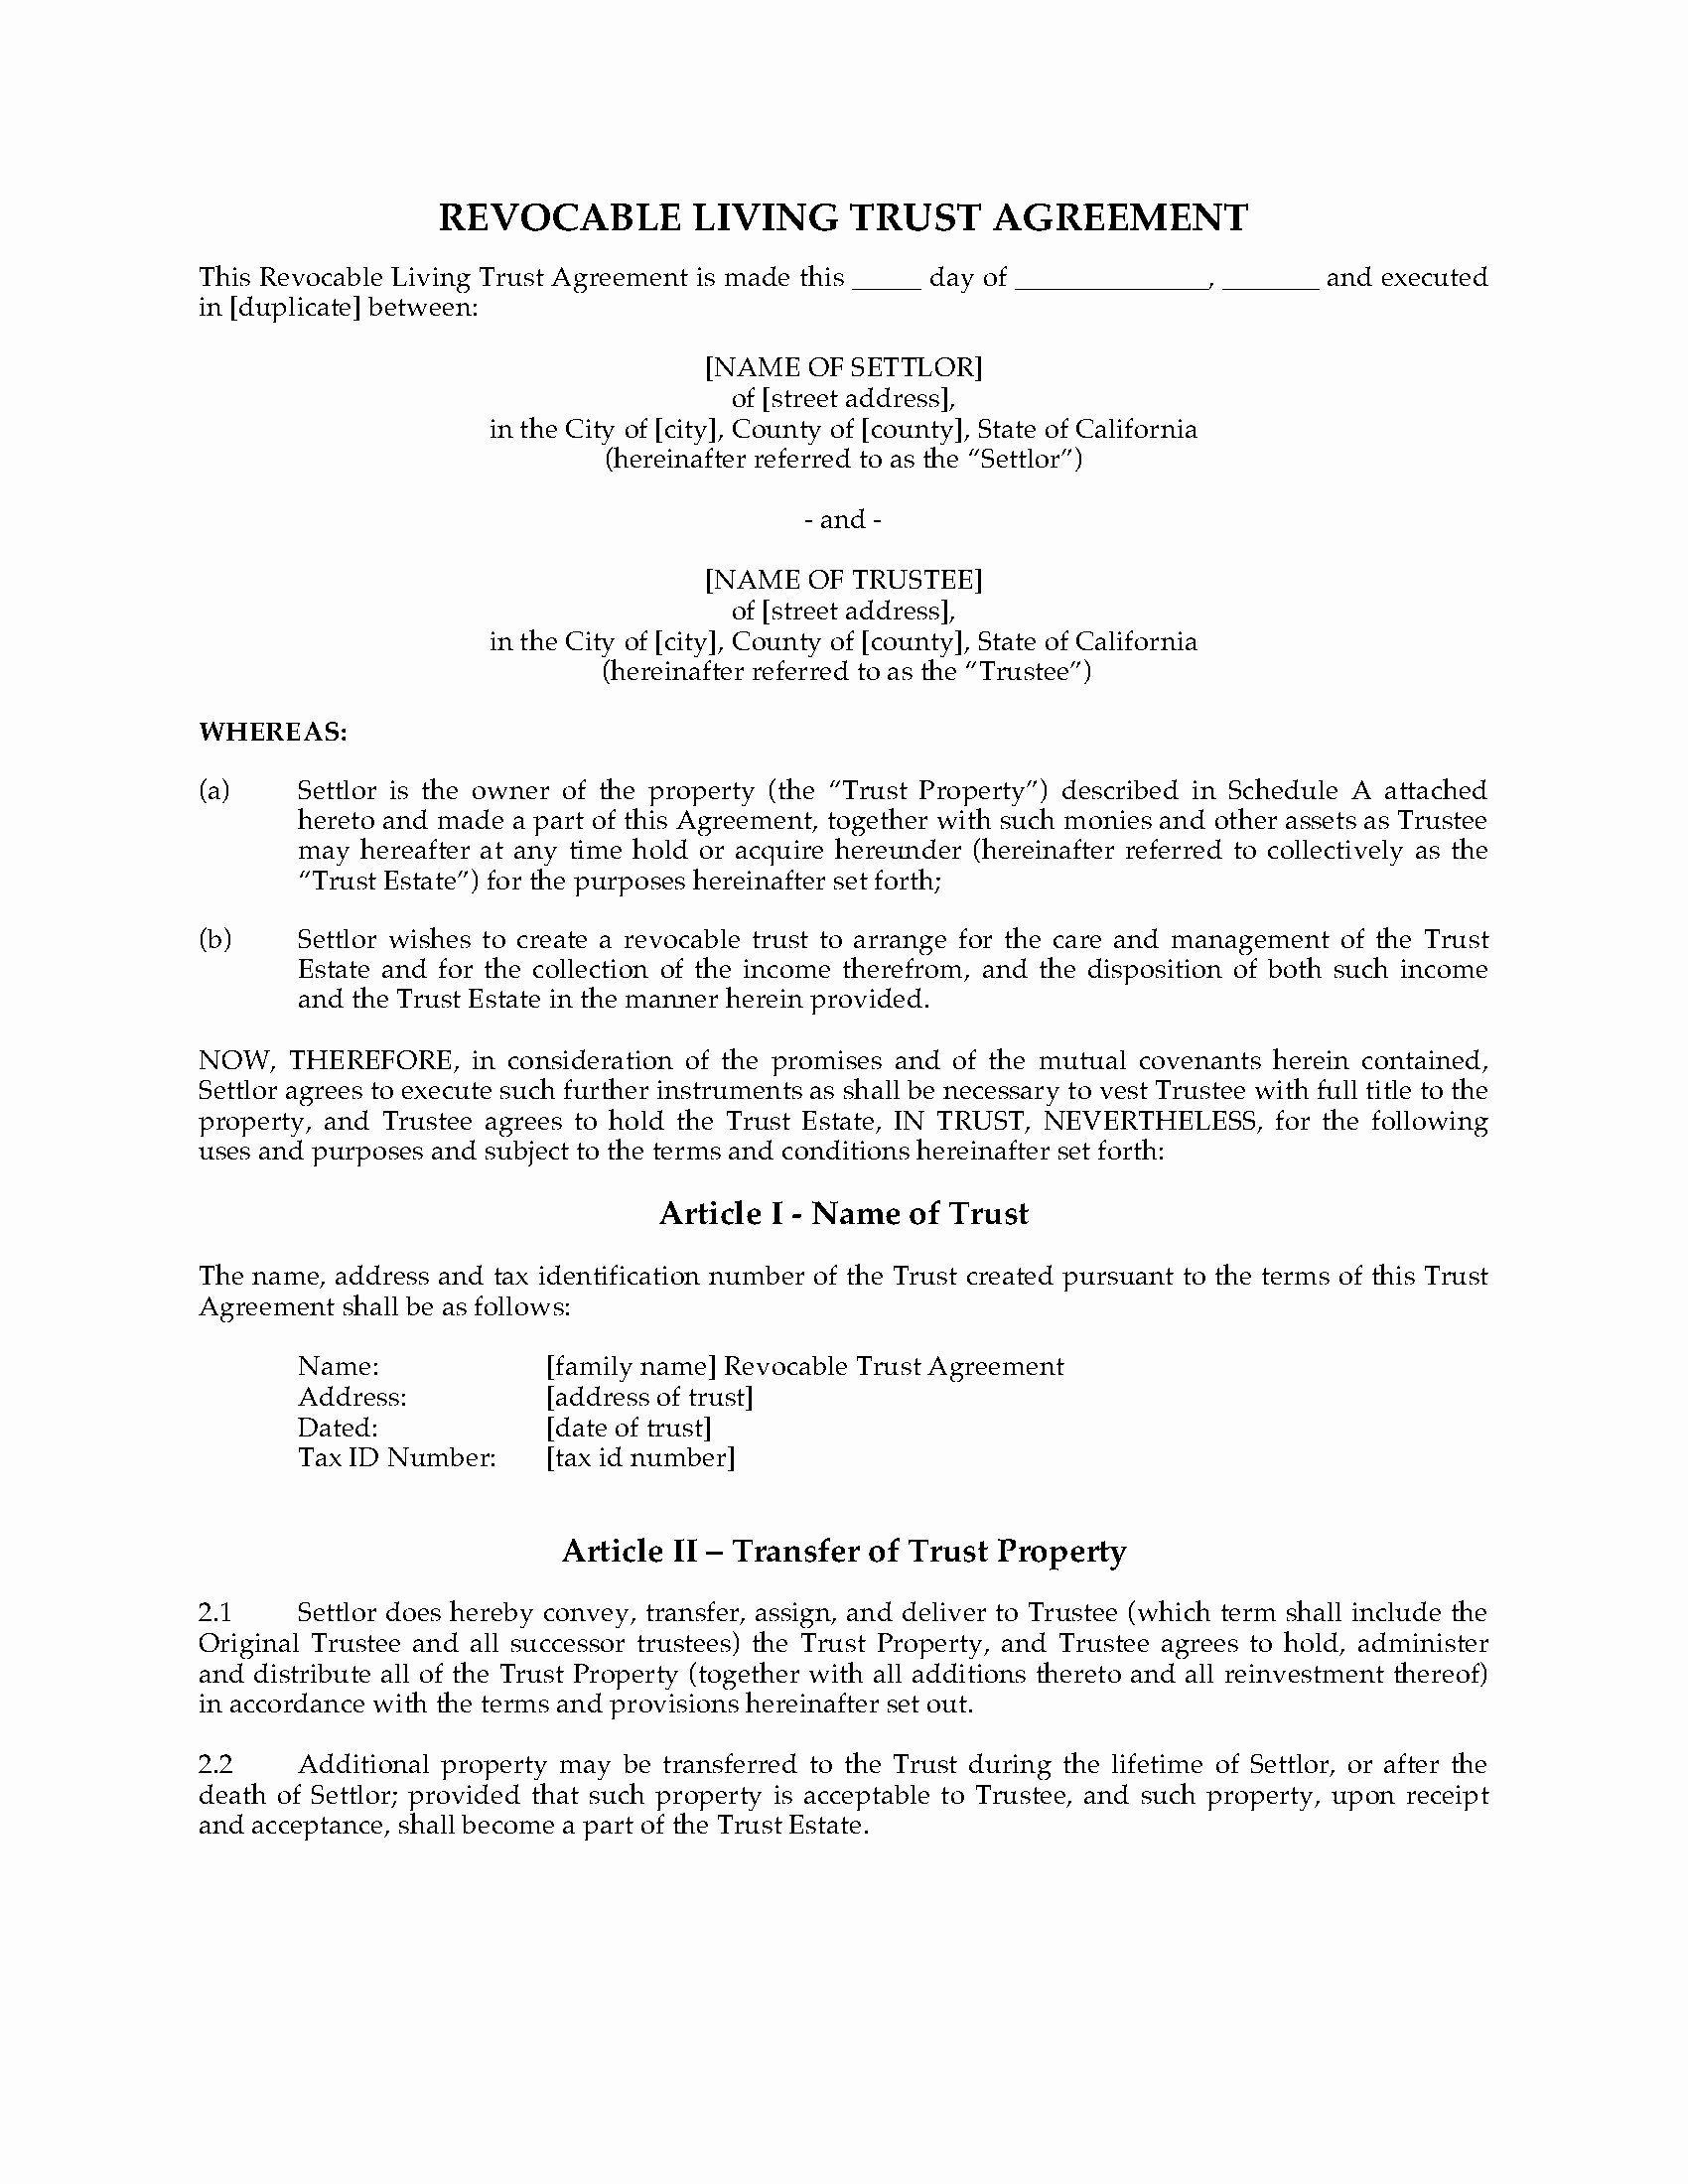 Living Agreement Template Unique California Revocable Living Trust Agreement